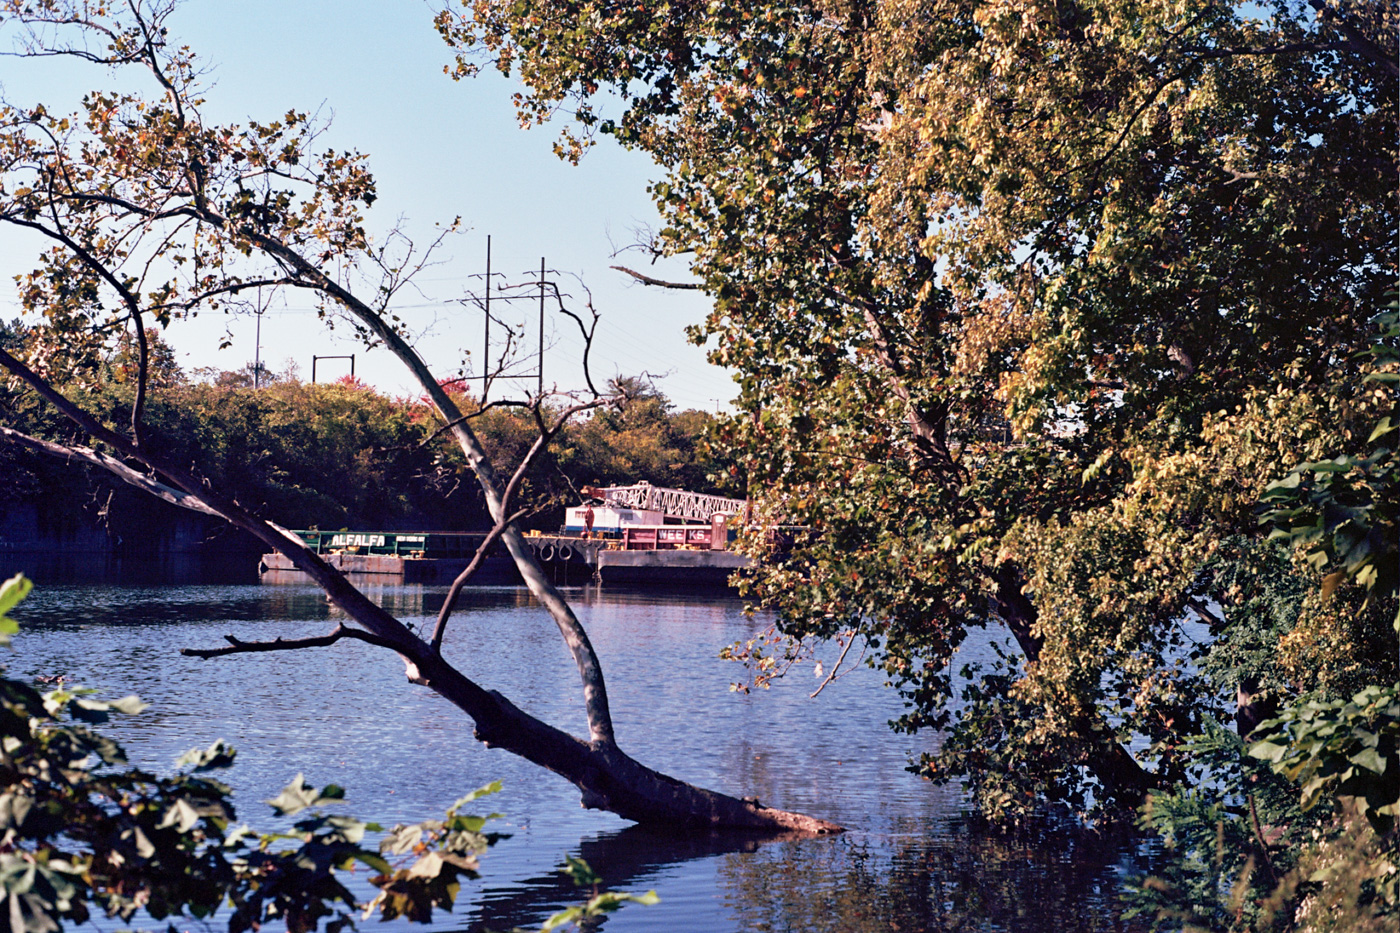 Barge on the Schuylkill River